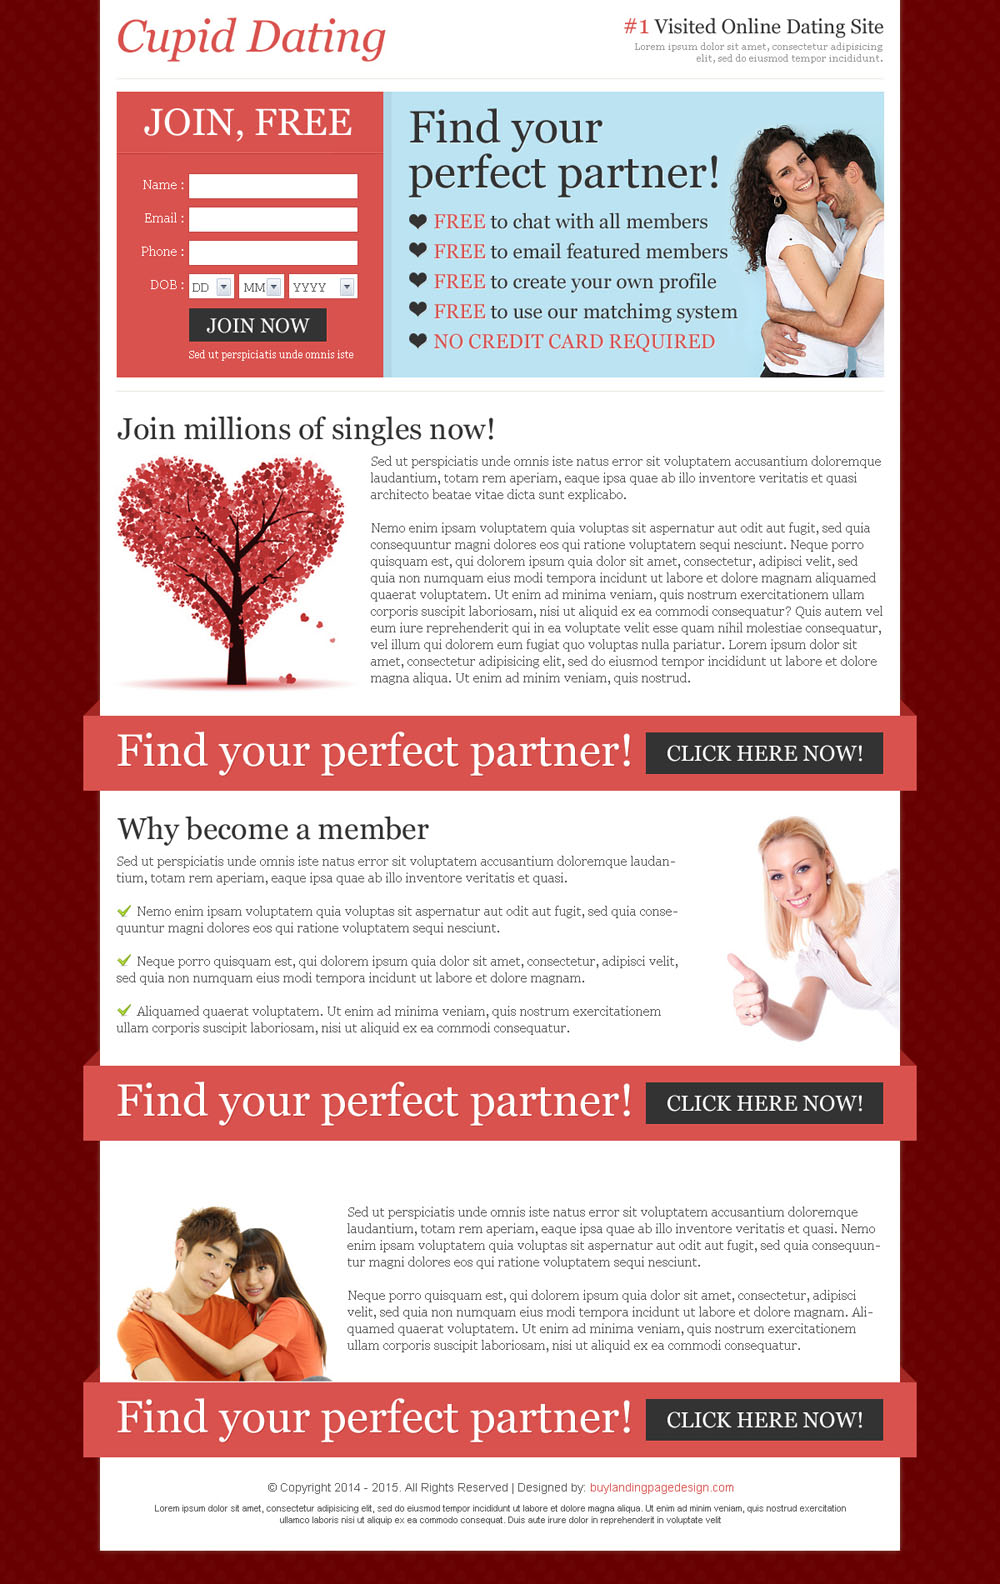 find-your-perfect-partner-dating-serarch-landing-page-design-templates-017